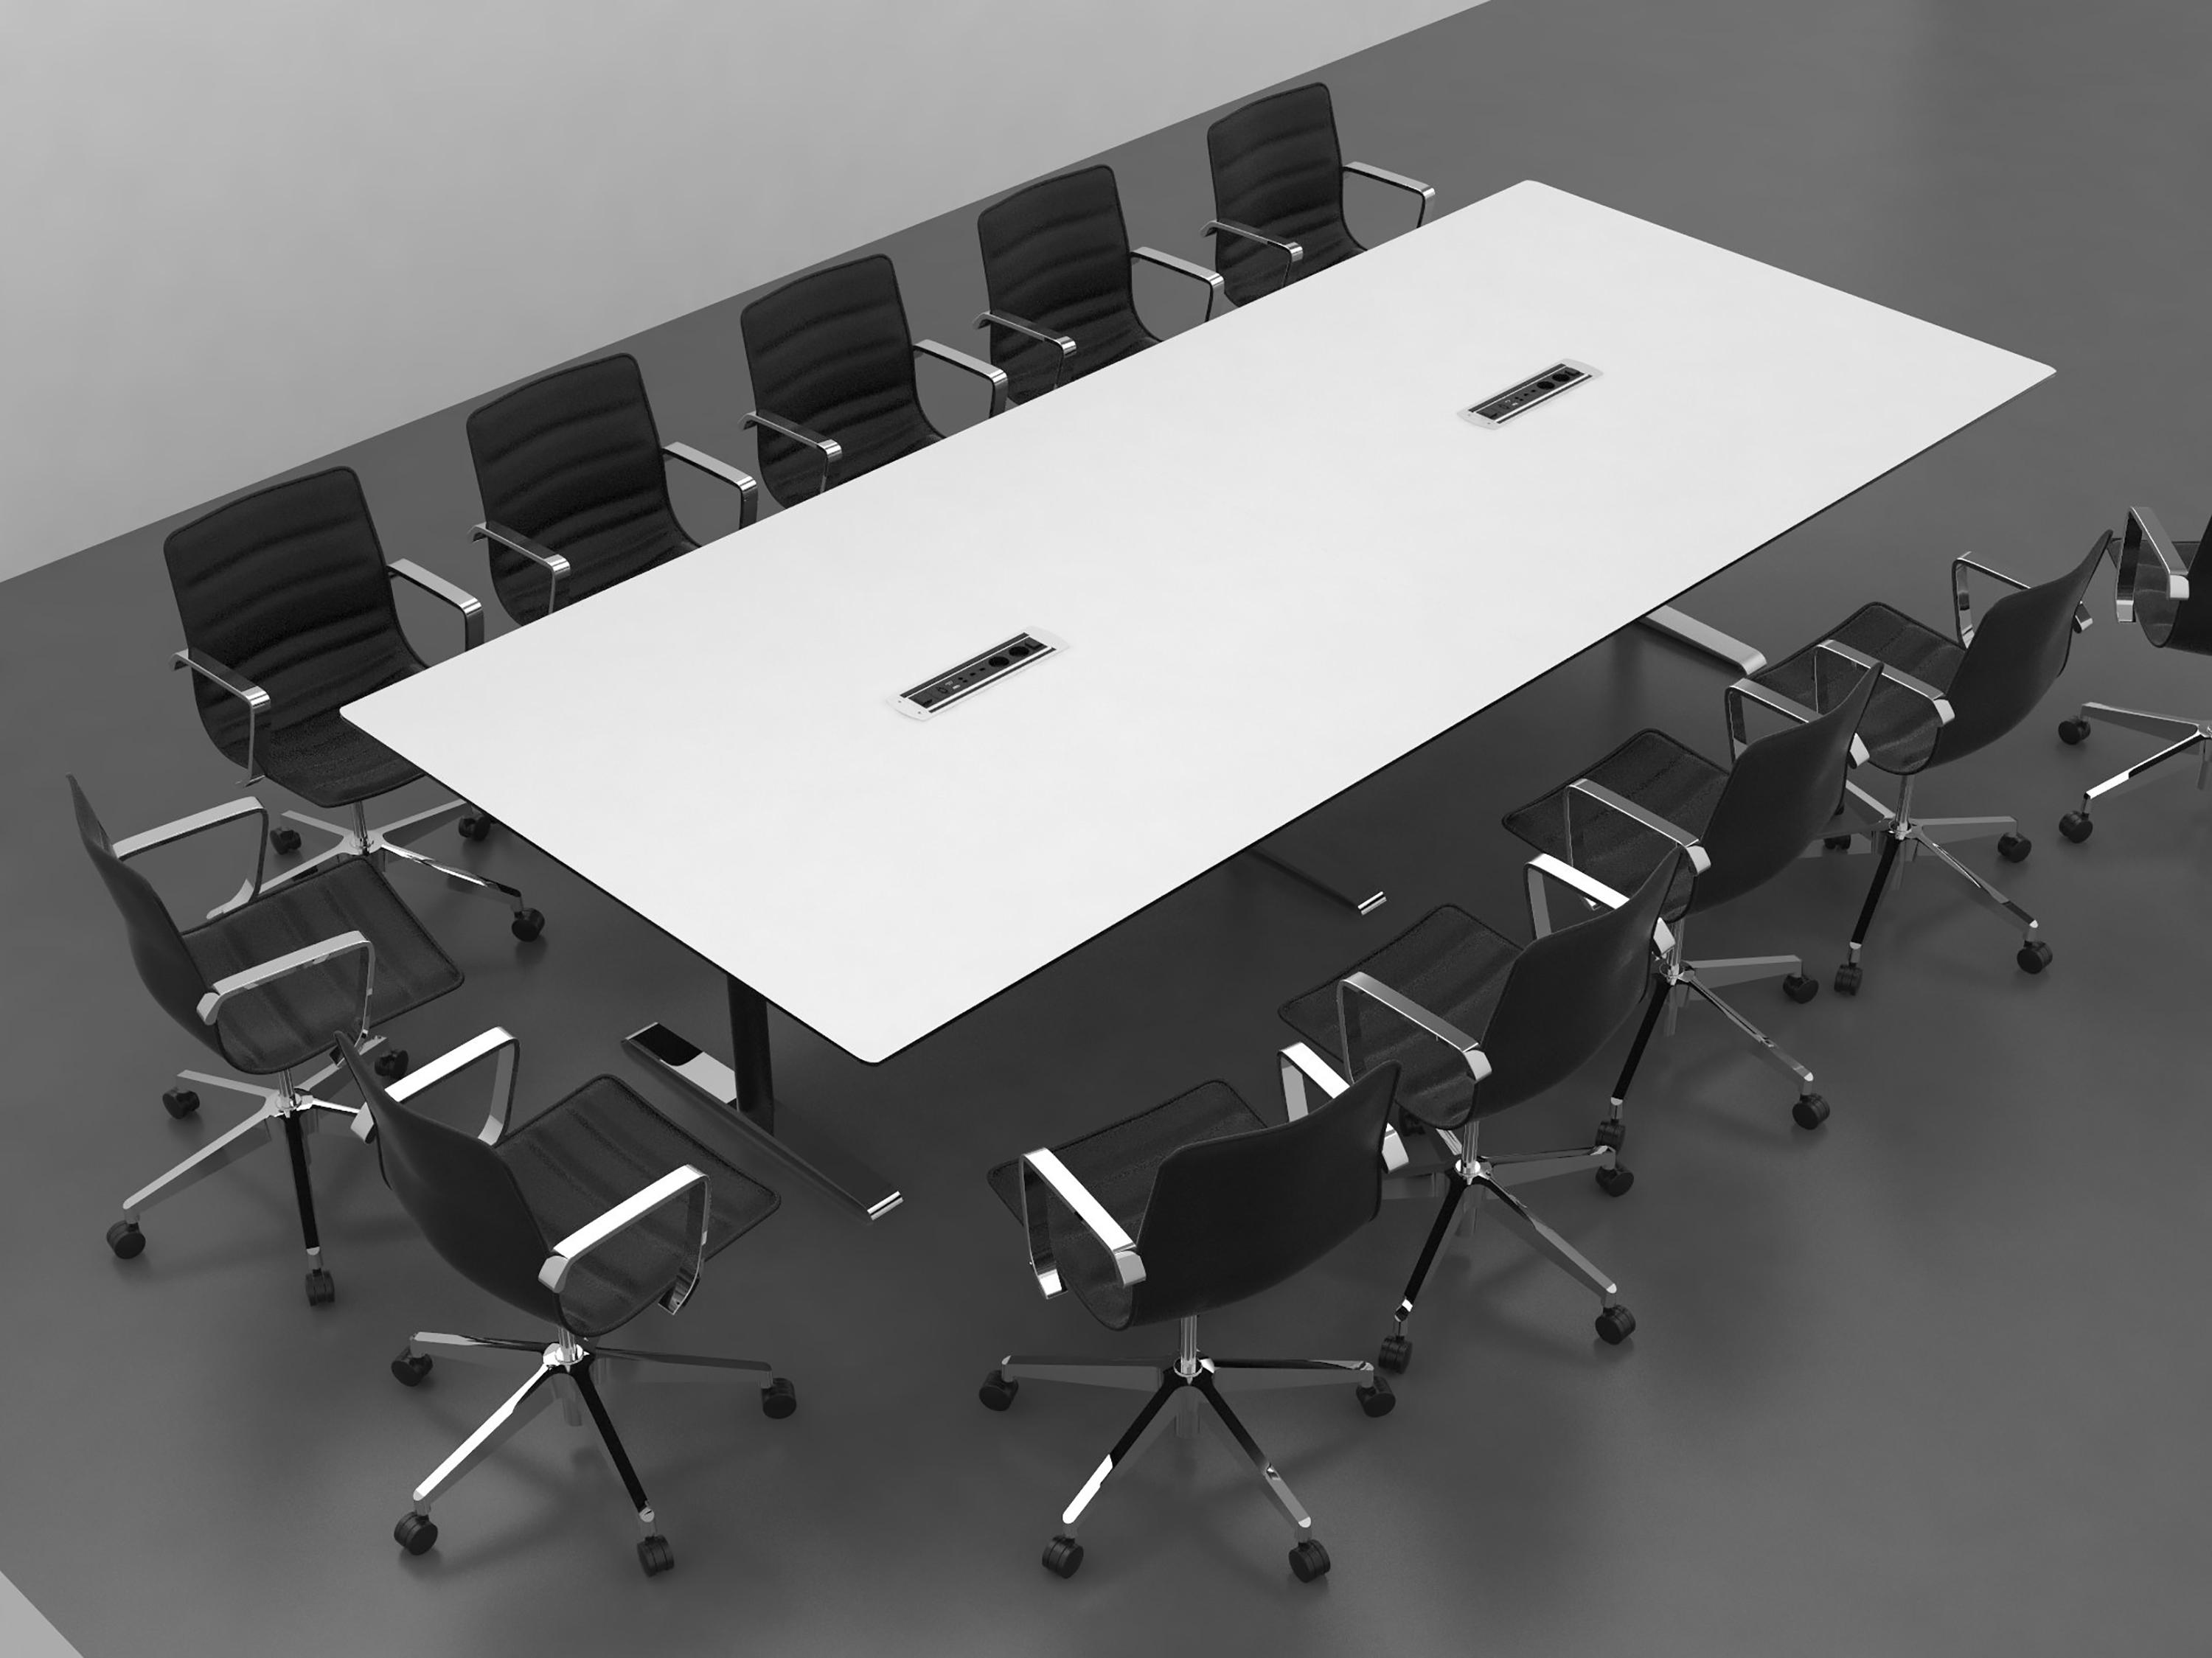 QUADRO CONFERENCE TABLE Contract Tables From Cube Design Architonic - White laminate conference table